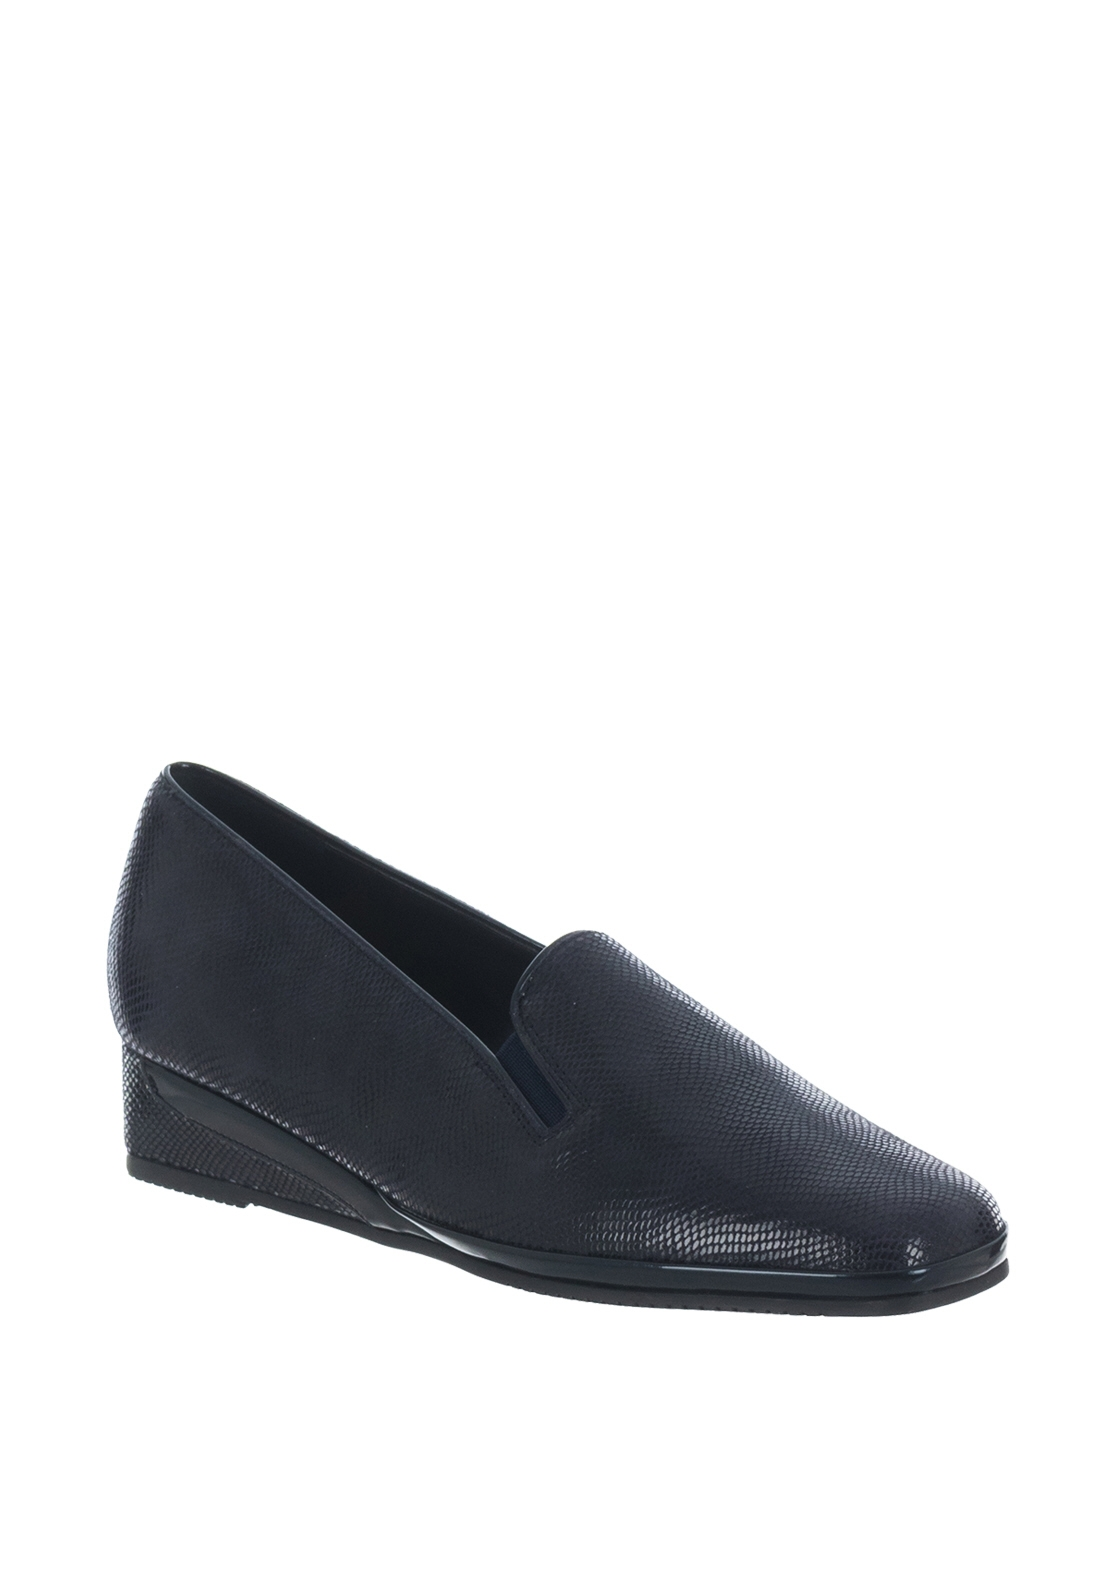 ccb37fddd67f2 Van Dal Rochester II Leather Loafers, Navy | McElhinneys